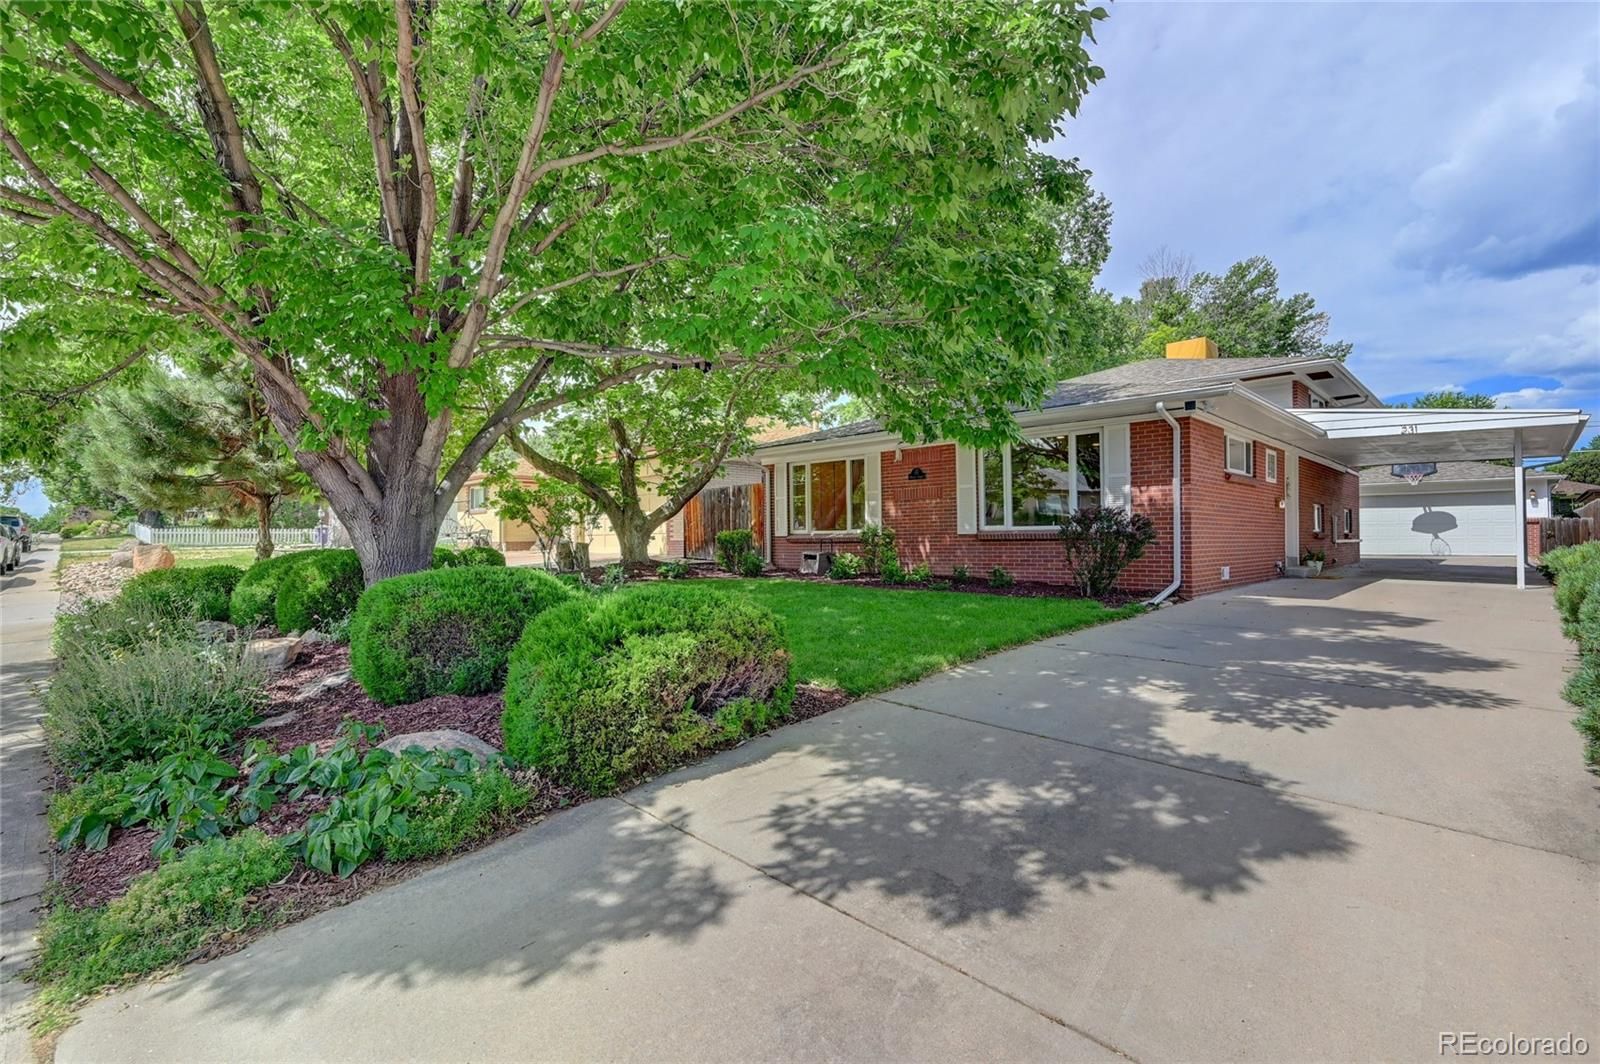 MLS# 3941495 - 20 - 231 Hudson Street, Denver, CO 80220